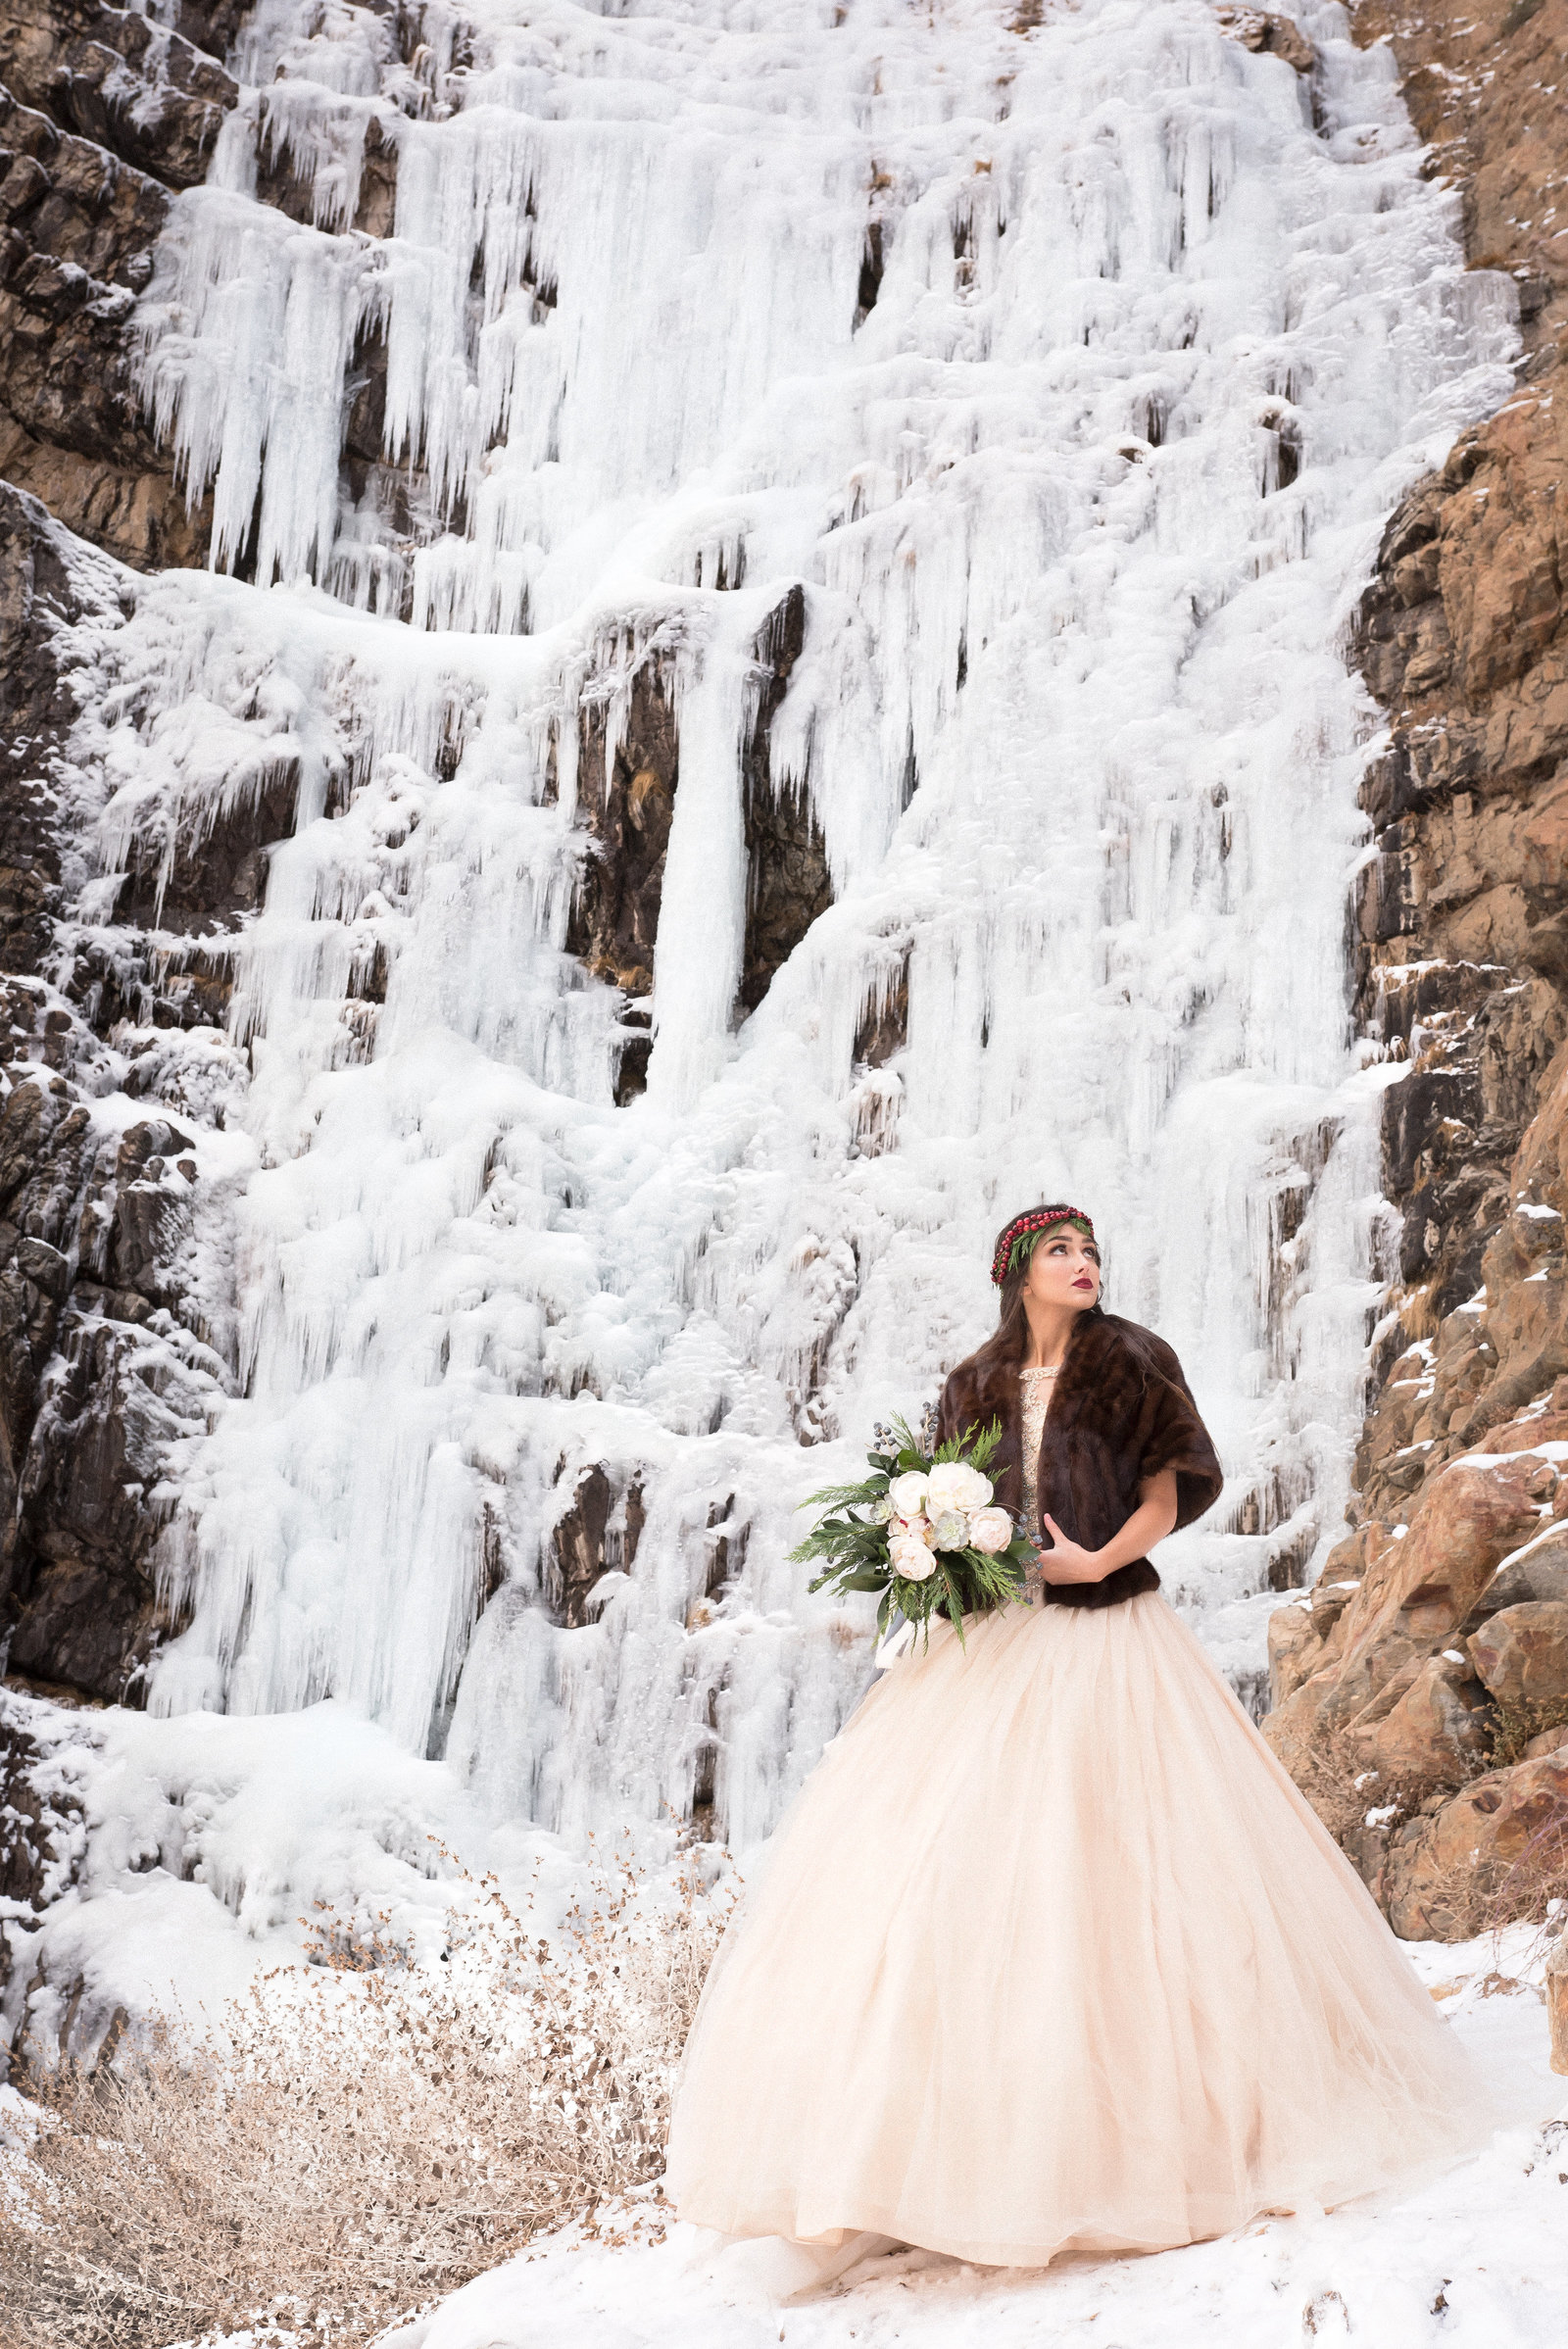 Kamera Lynn Photography Winter Cranberry Floral Crown Velvet Cake Frozen Waterfall Bridal Photoshoot_0016